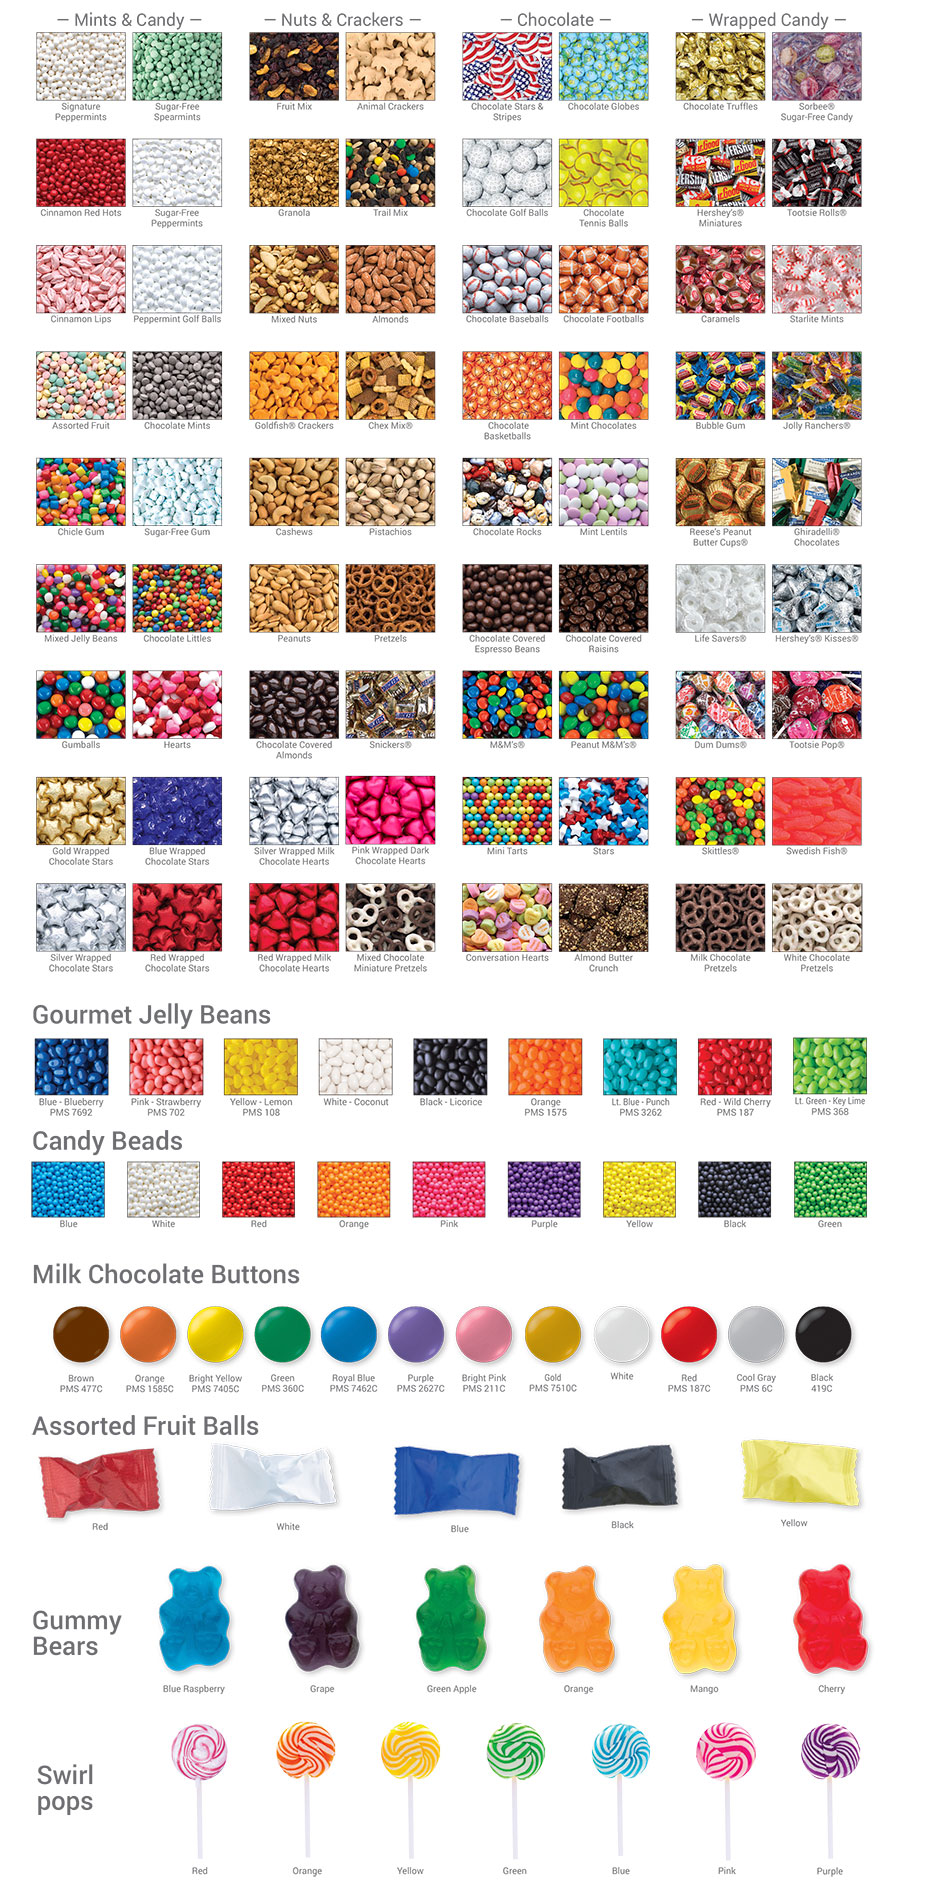 Standard Flavors & Fillings | Gourmet Jelly Beans | Candy Beads | Milk Chocolate Buttons | Assorted Fruit Balls | Gummy Bears | Swirl Pops